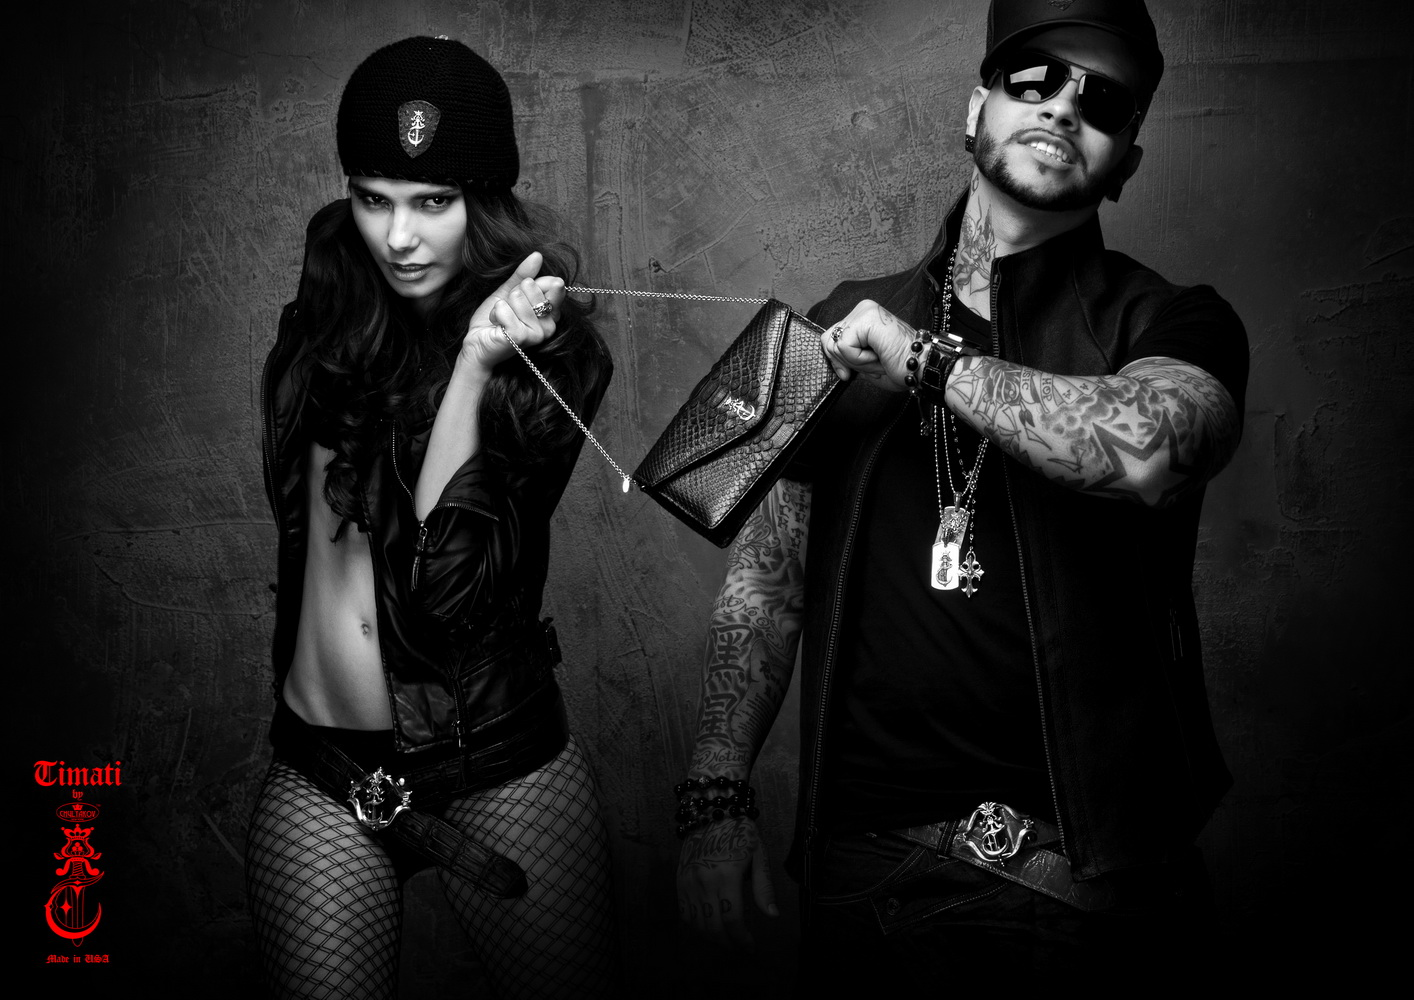 chulyakov new york gothic biker rock and now hip hop jewelry and leather accessories. Black Bedroom Furniture Sets. Home Design Ideas